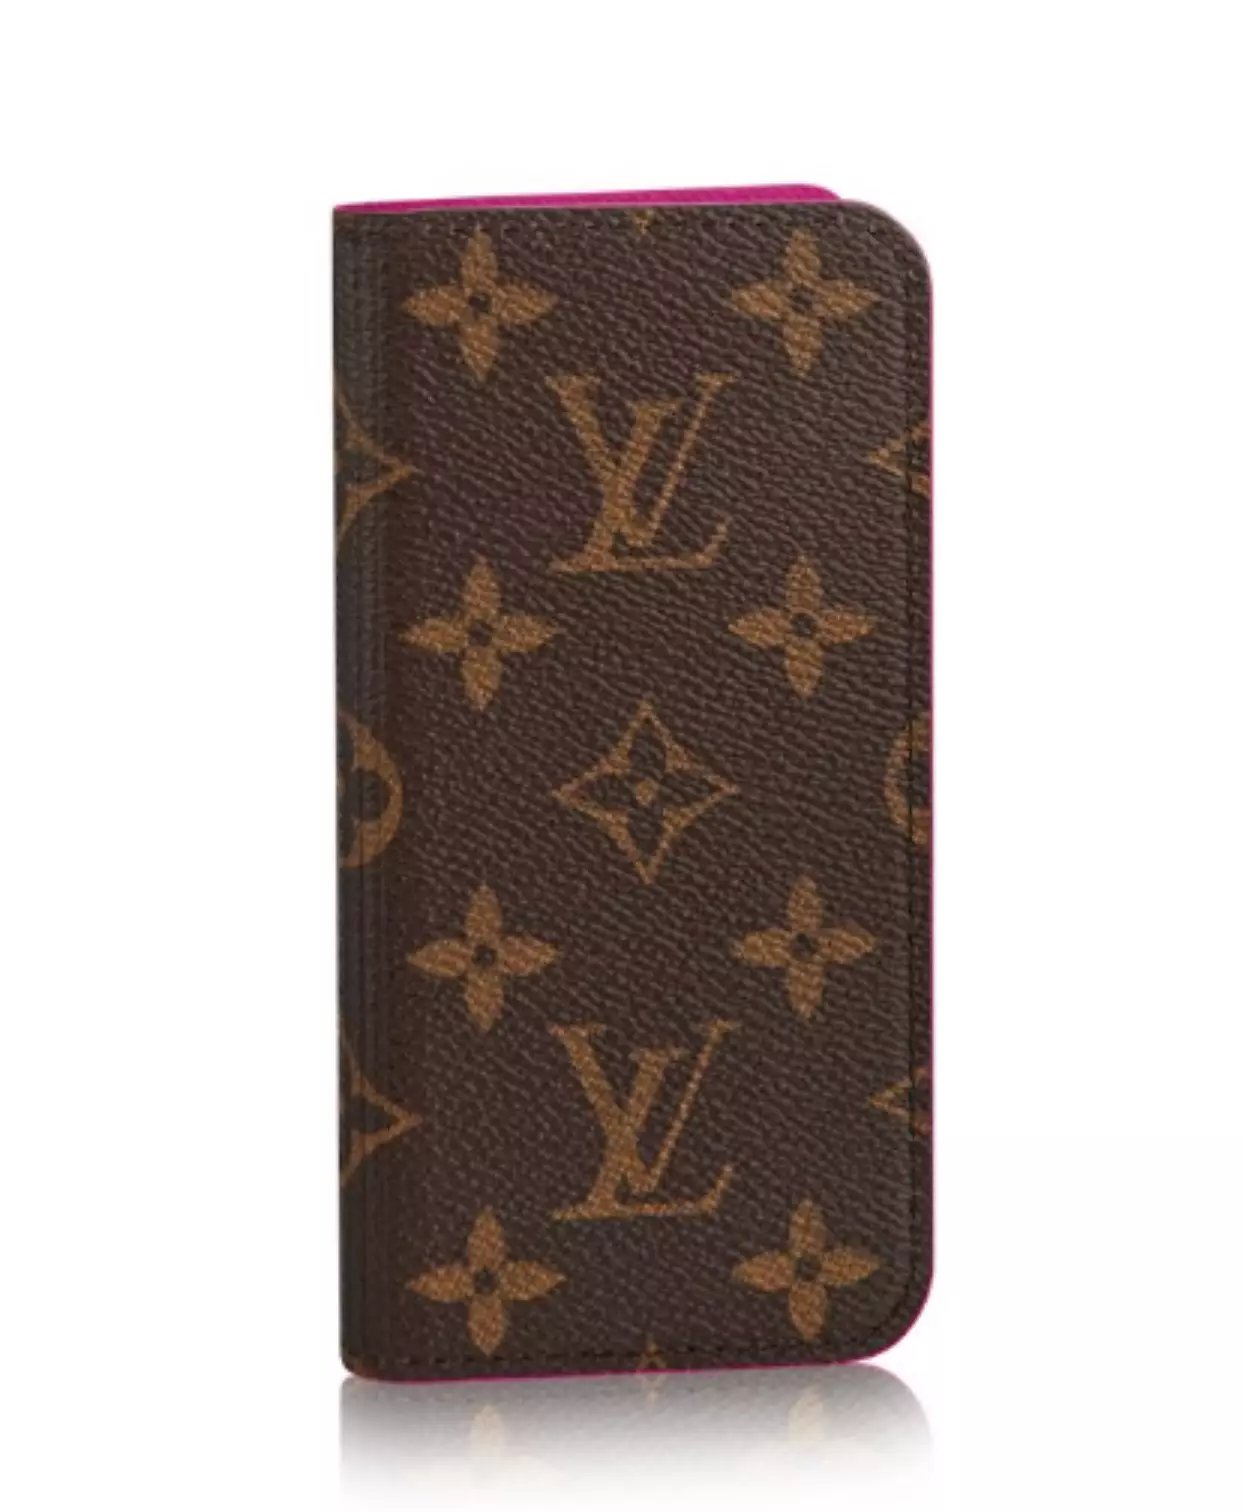 edle iphone hüllen foto iphone hülle Louis Vuitton iphone7 Plus hülle wann kommt das iphone 6 raus in deutschland angebot iphone 7 Plus iphone 6 deutsch ca7 iphone 7 Plus handycover 7lbst gestalten handyhüller 7lber machen